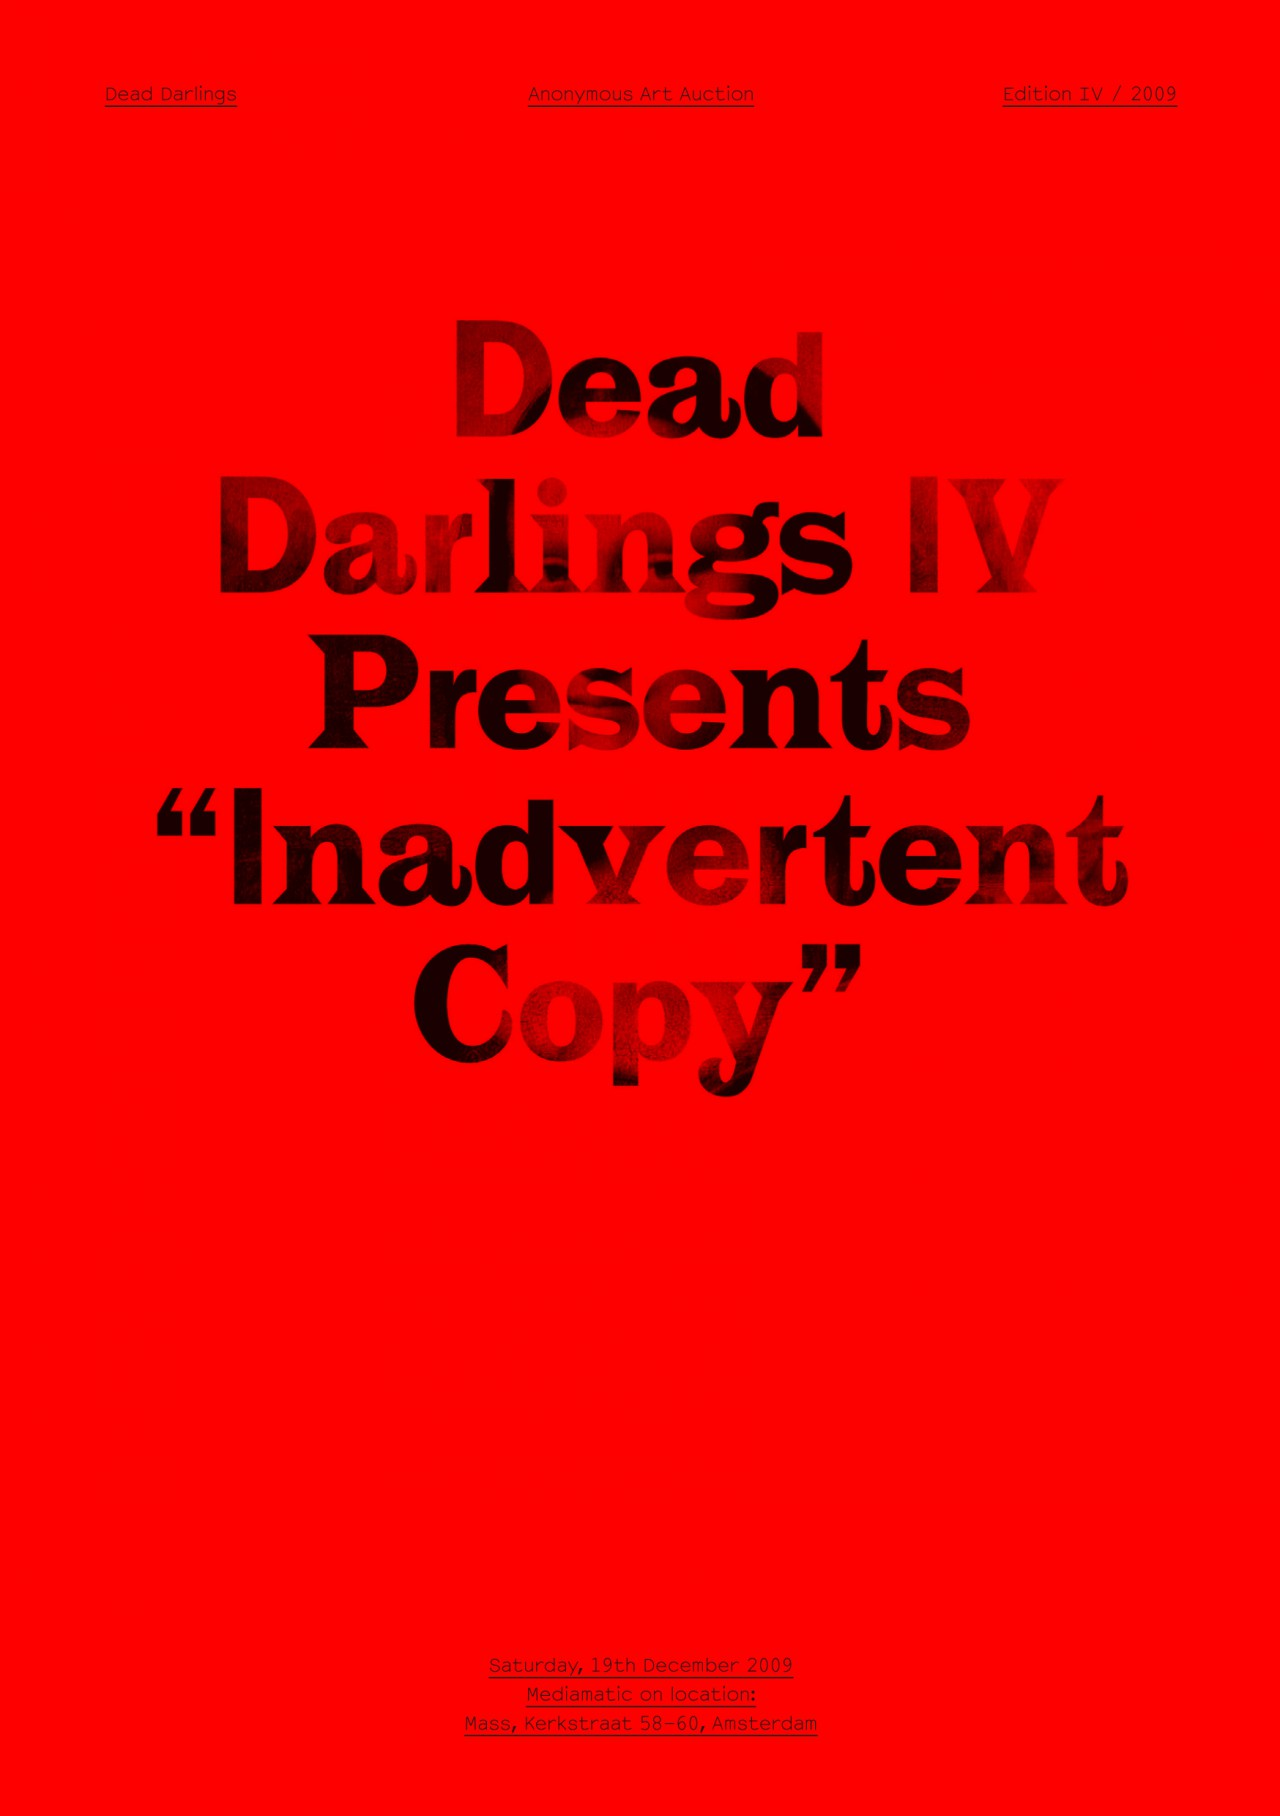 Dead Darlings Catalogues